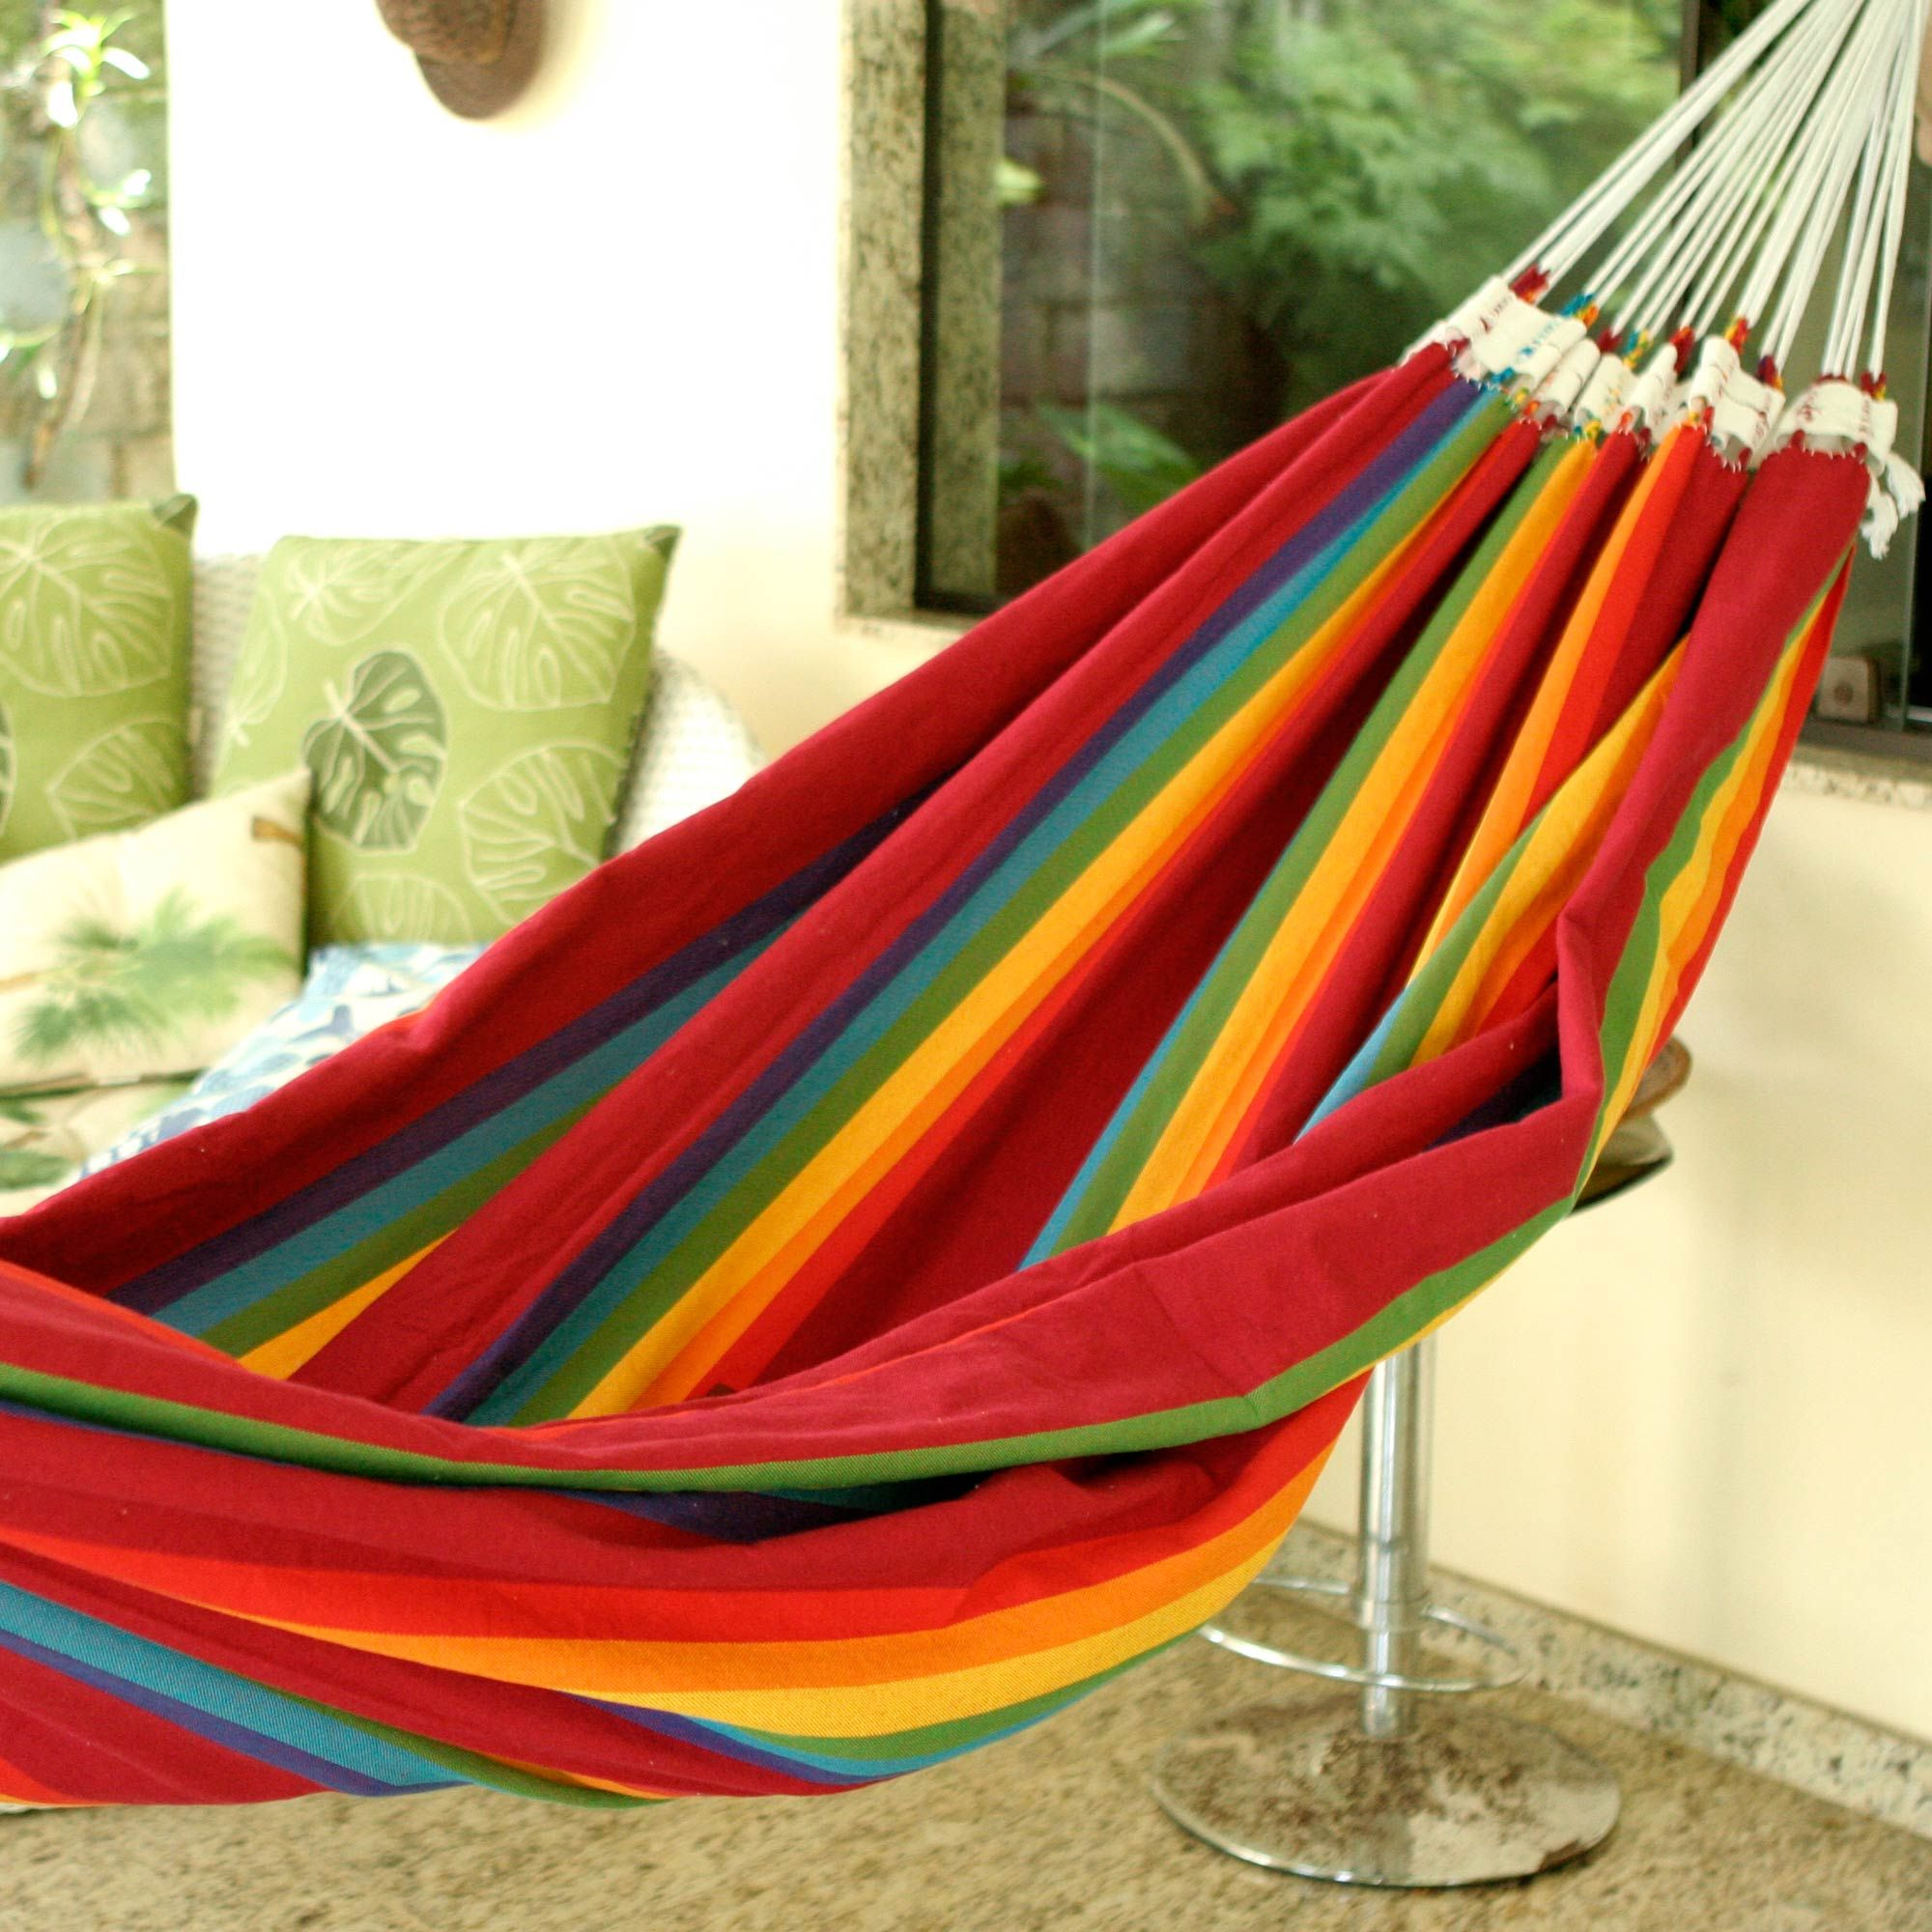 beautiful color iracema rainbow handmade striped cotton hammock  double  beautiful color iracema rainbow handmade striped cotton hammock      rh   pinterest